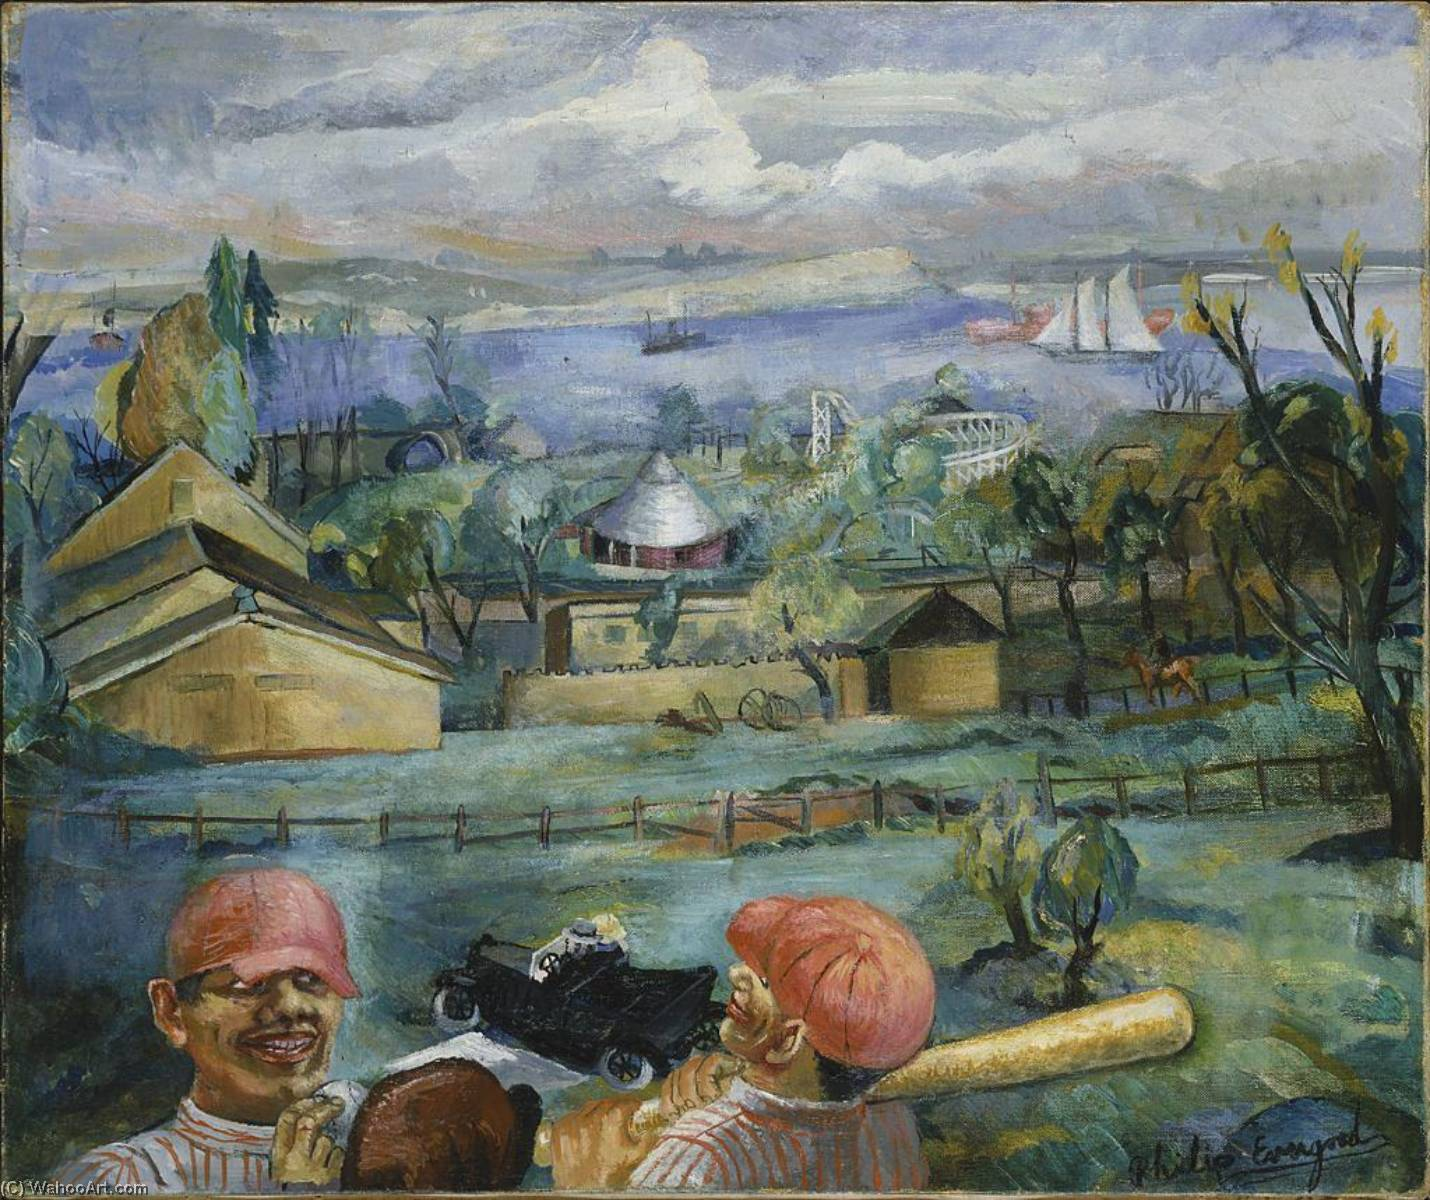 early youth de babe ruth ( ancien nord Plage parc dattractions ), huile sur toile de Philip Evergood (1901-1973)